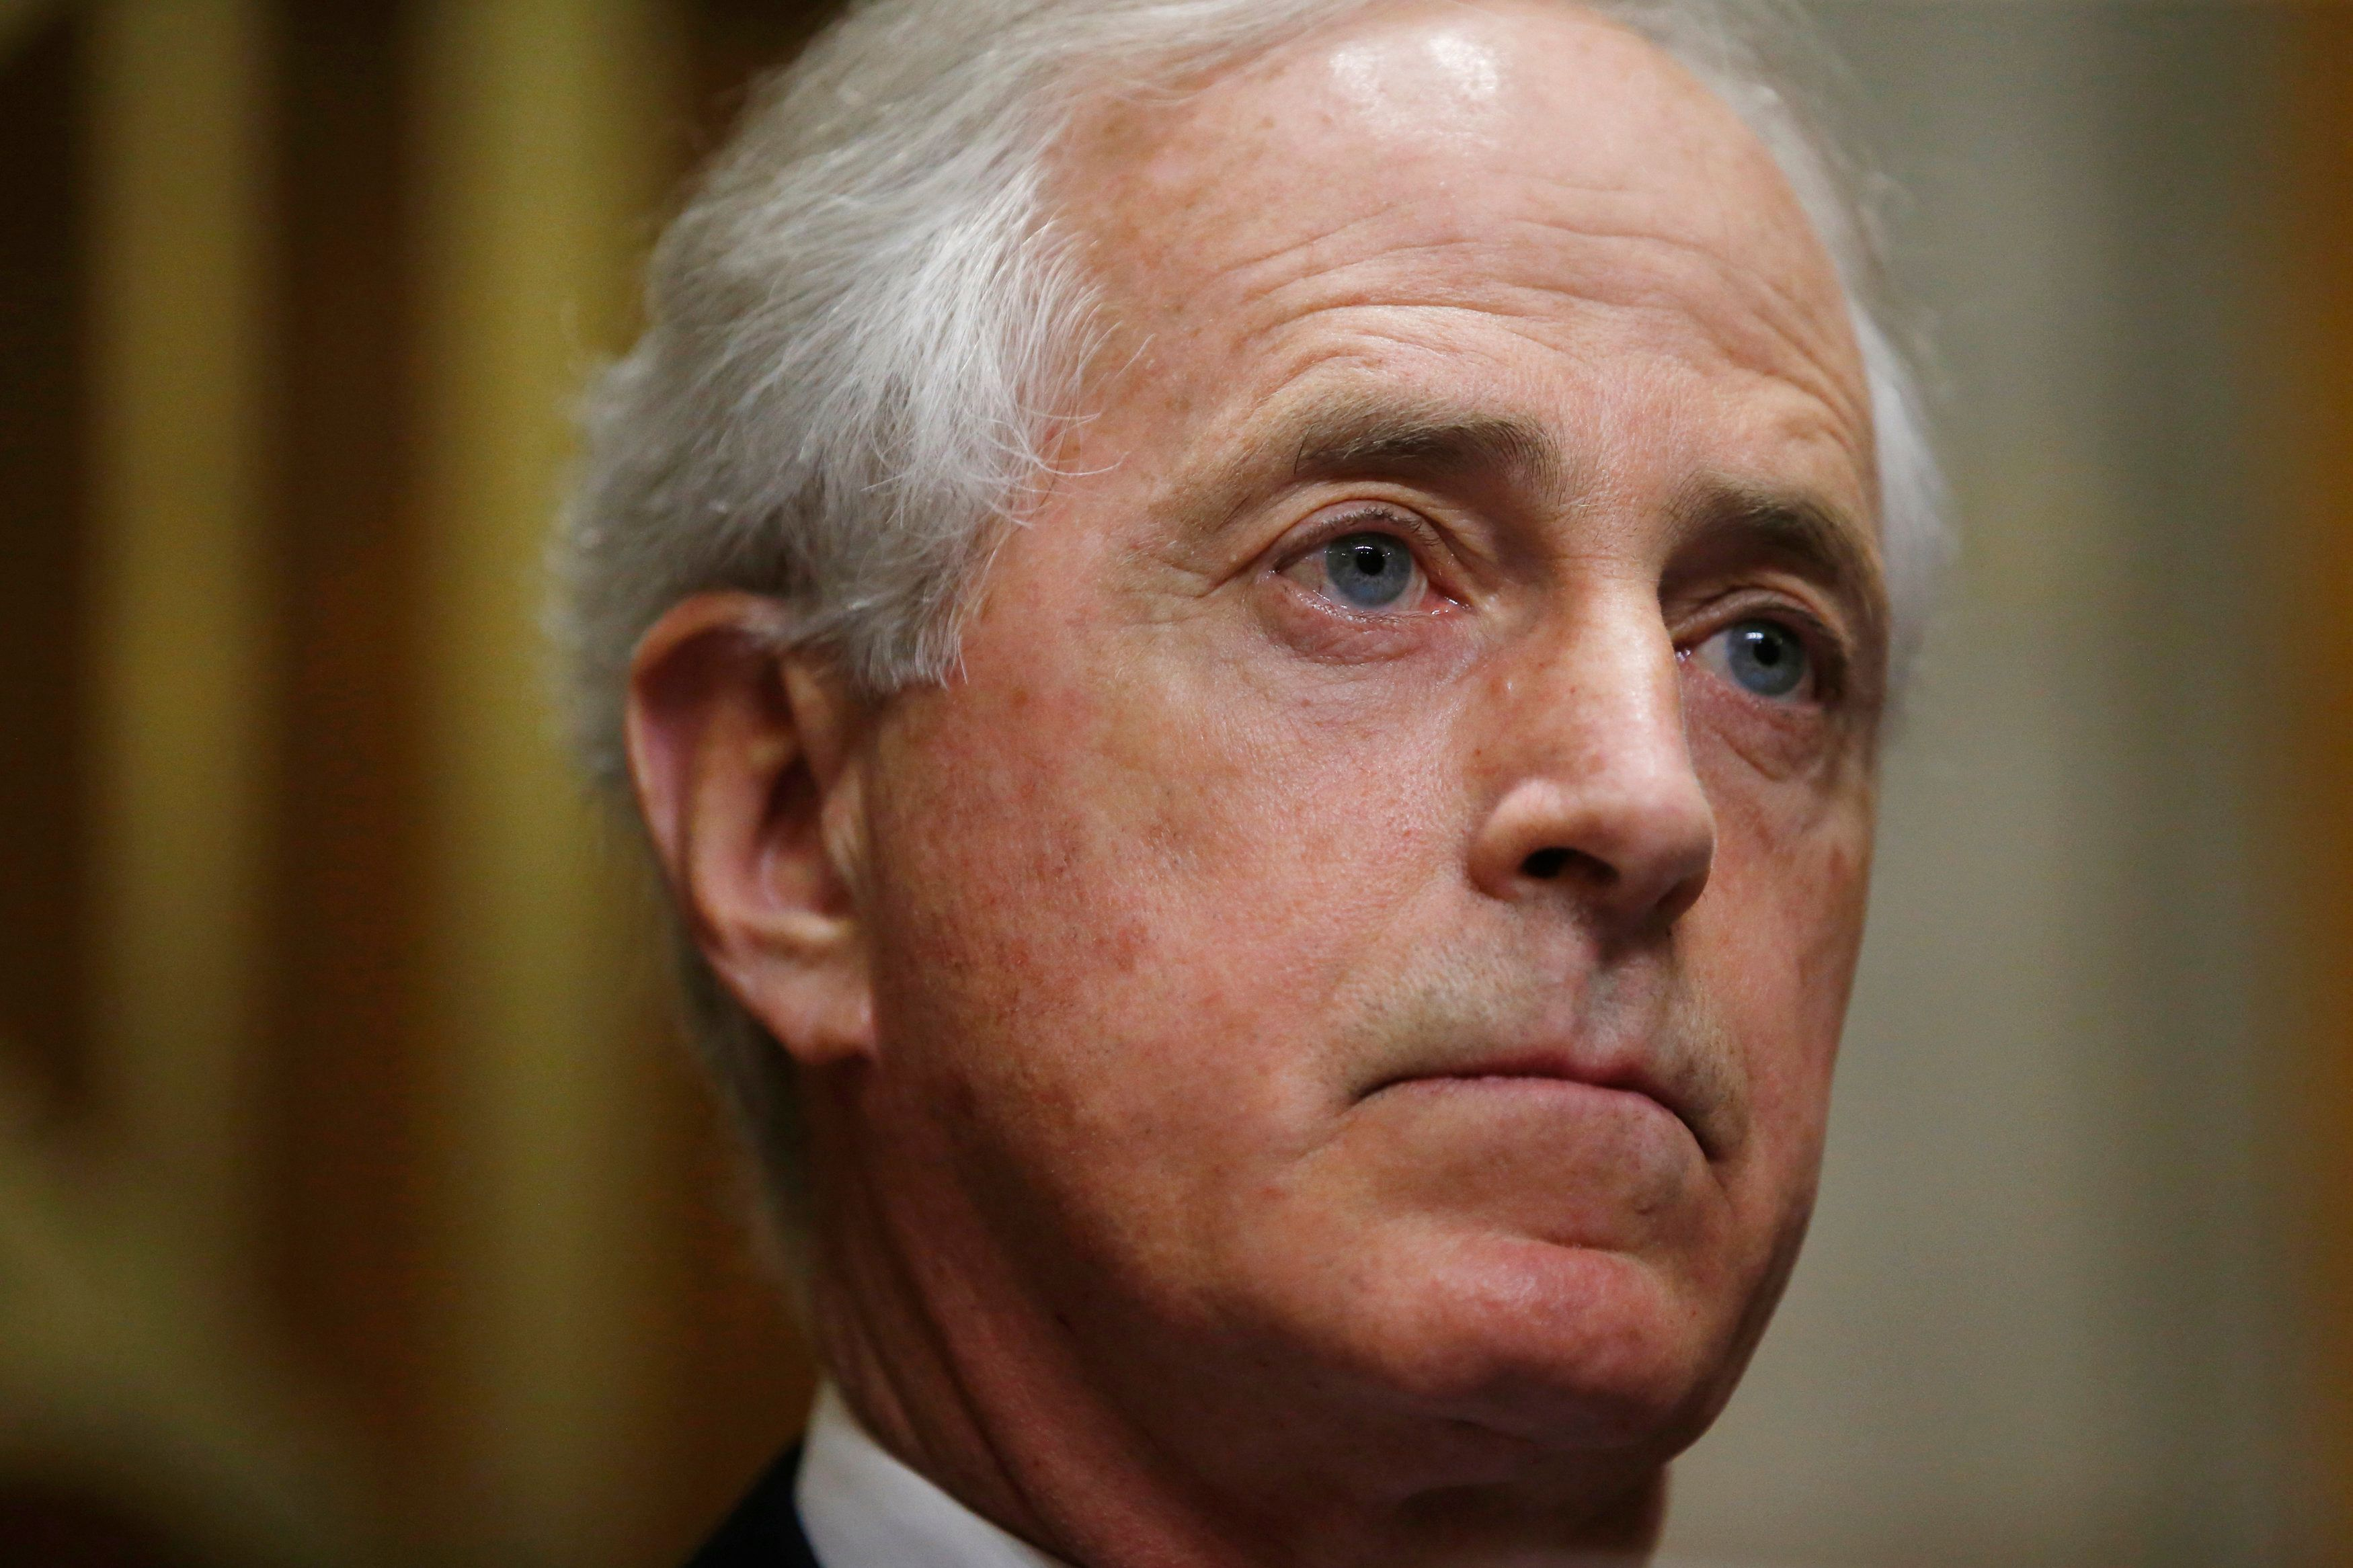 Corker defends praise of Dem running for seat